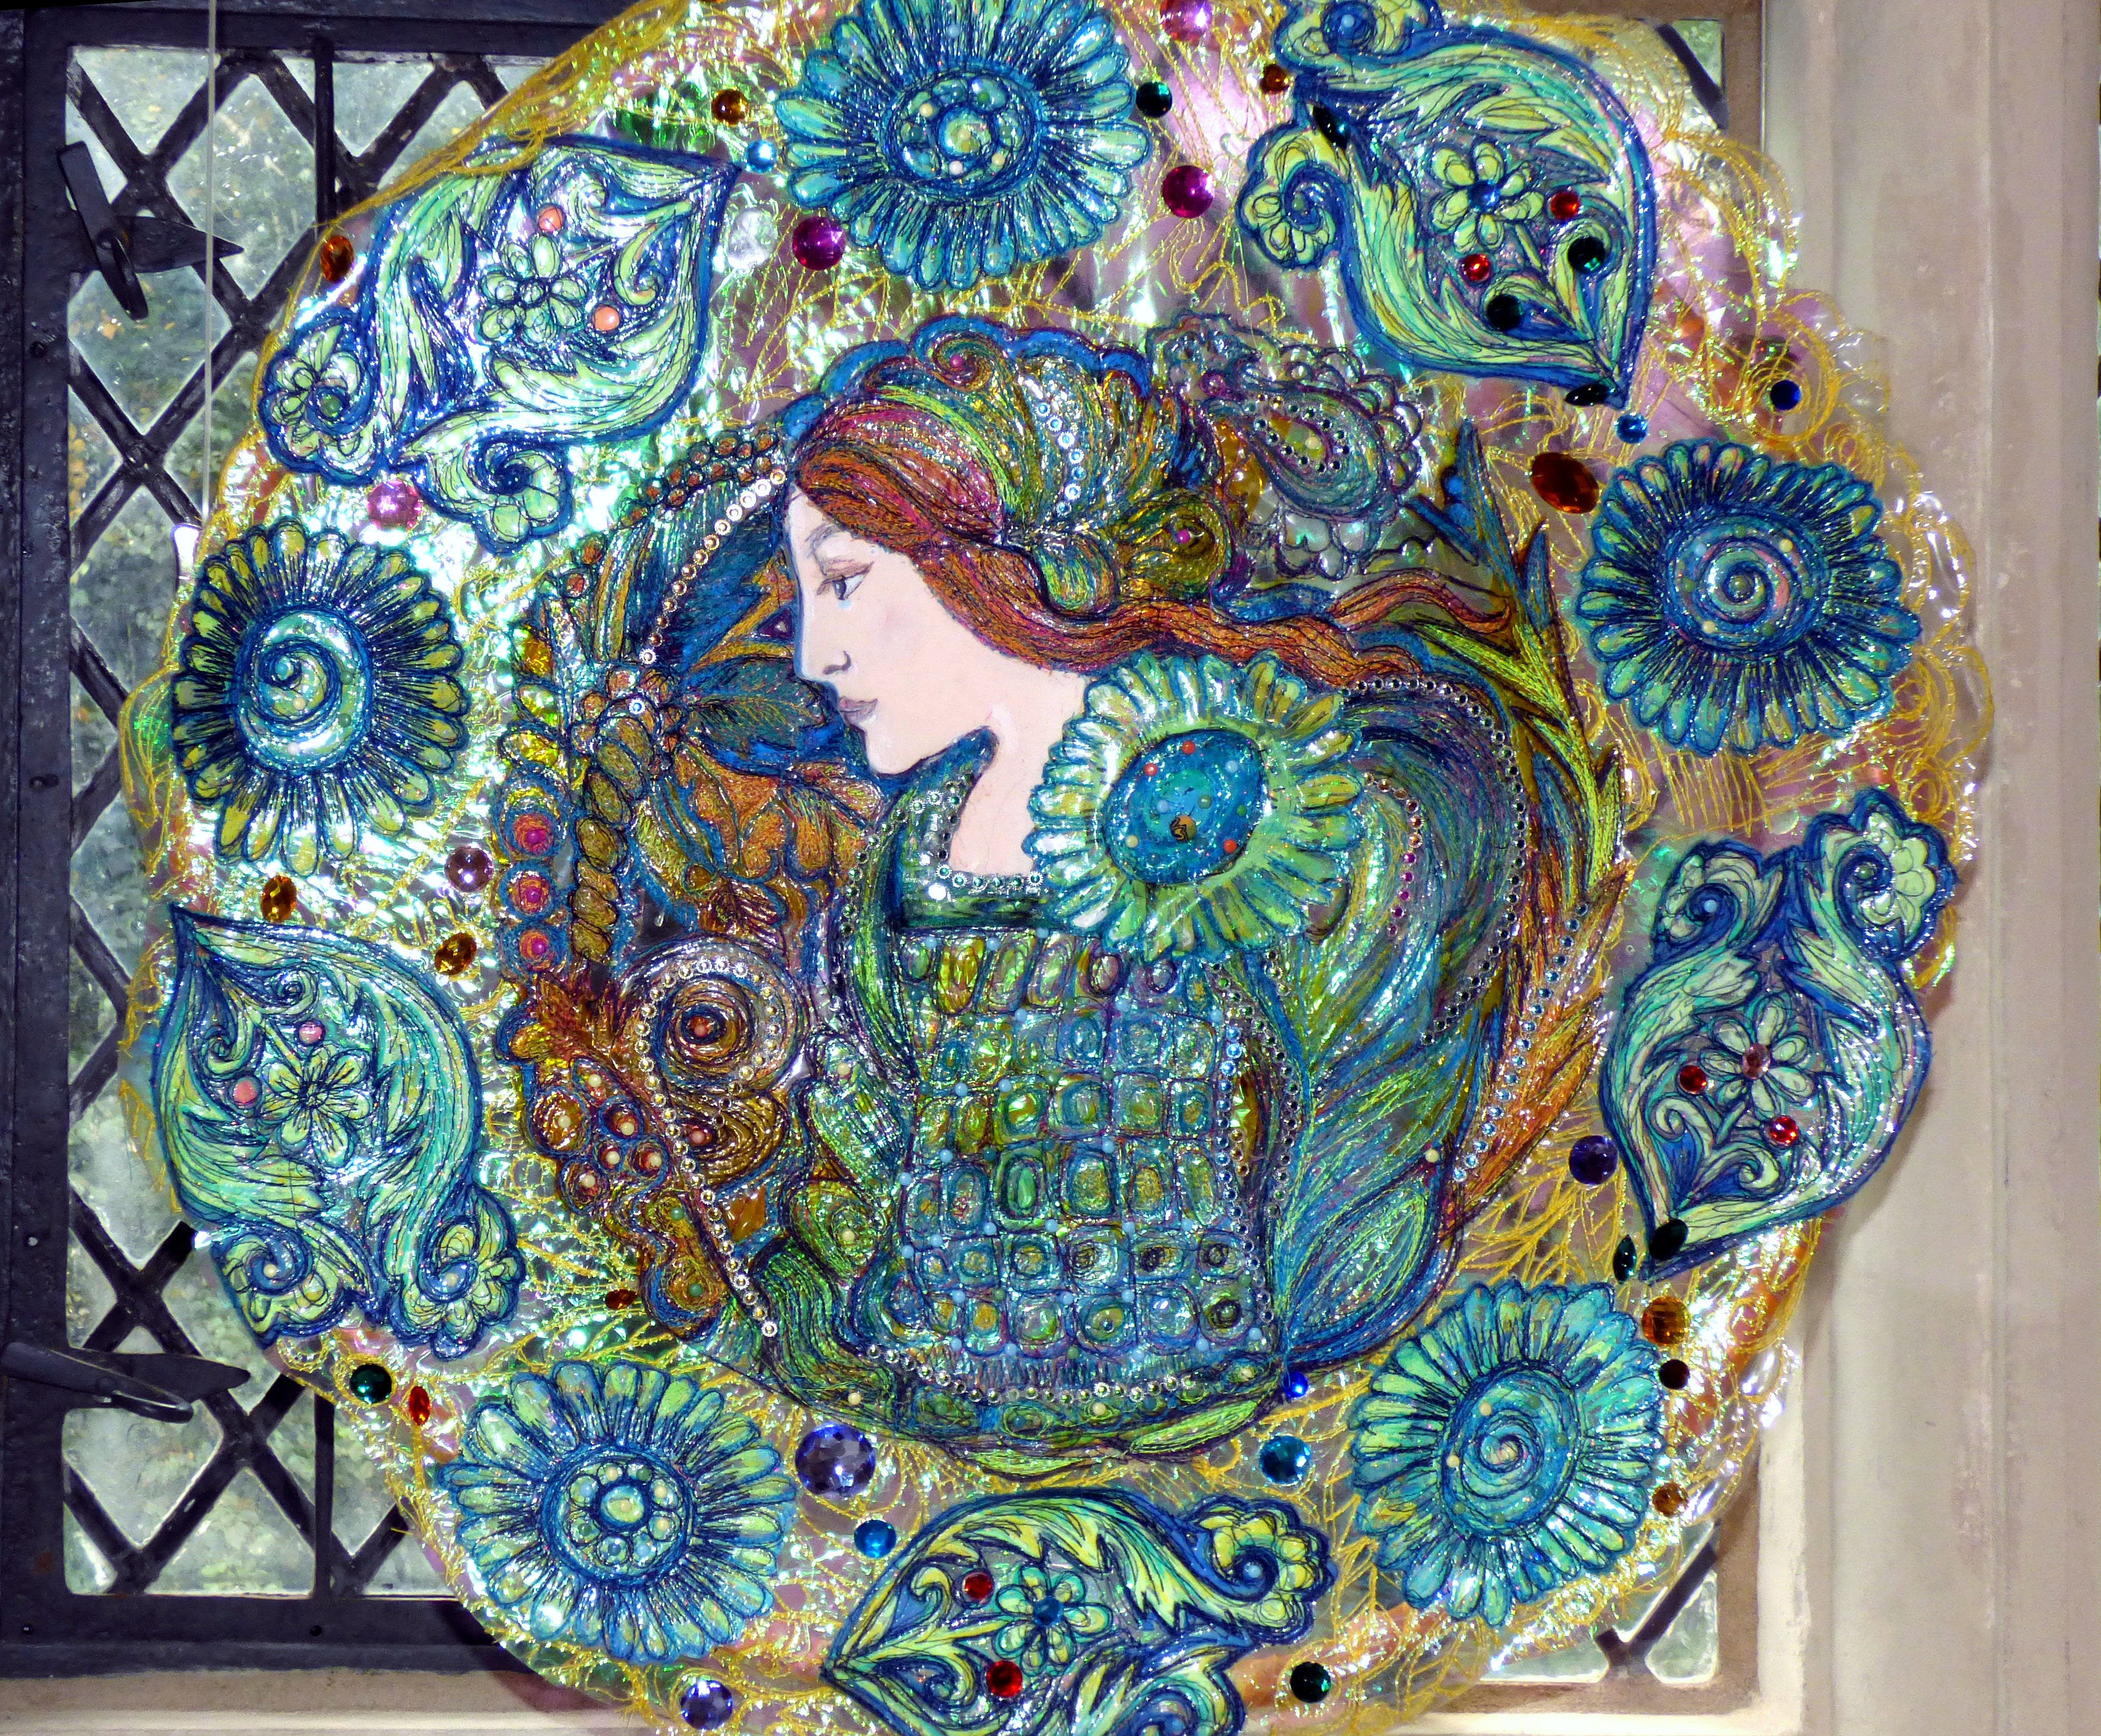 DELL ROBBIA: THE LADY by Nikki Parmenter, Gawthorpe Hall, Sept 2020